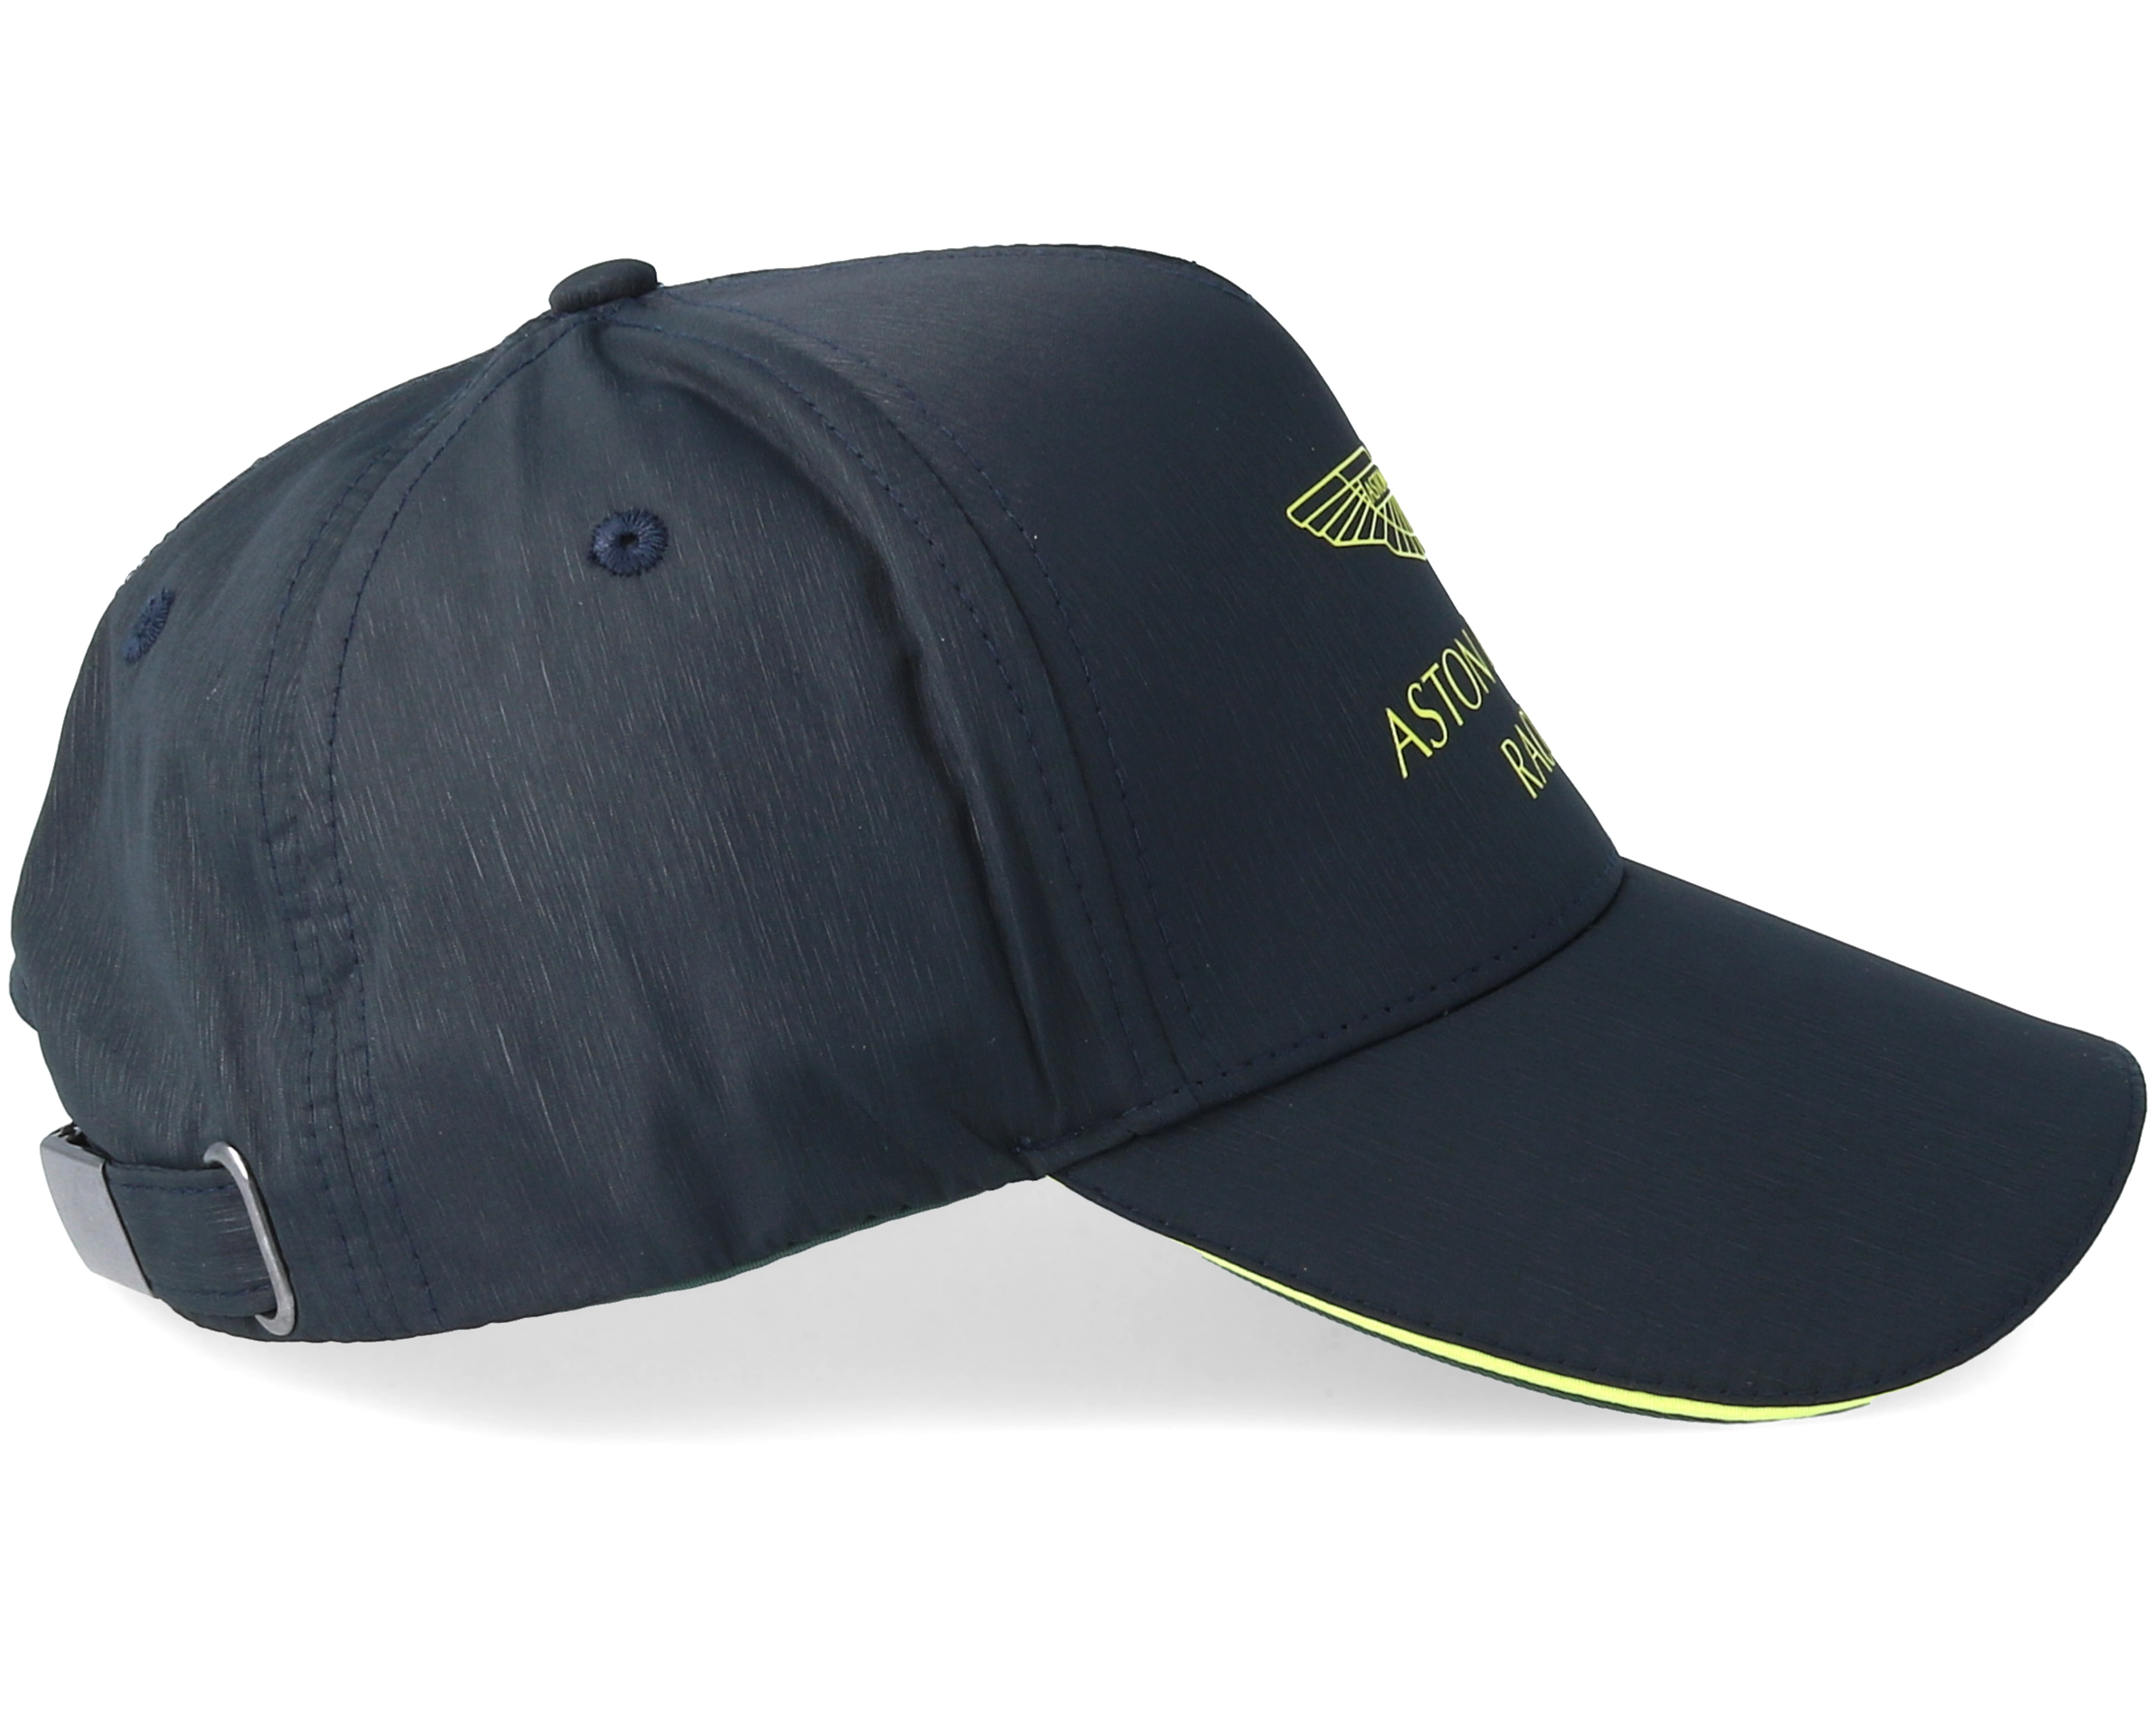 aston martin racing adult team cap navy adjustable. Black Bedroom Furniture Sets. Home Design Ideas